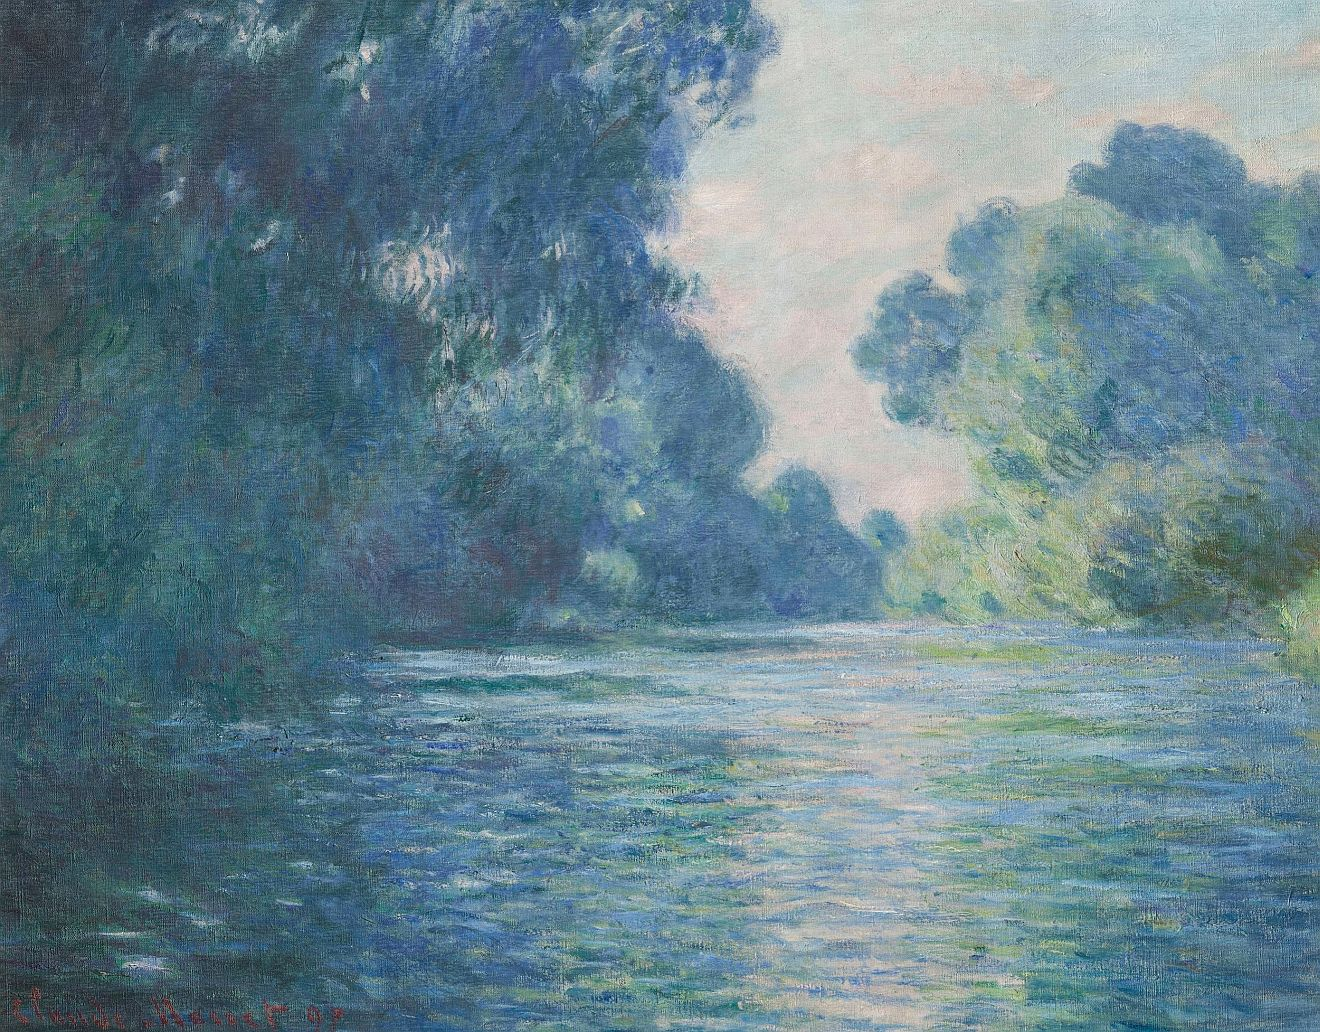 The painting I m going to do for my essay is Claude Monet s